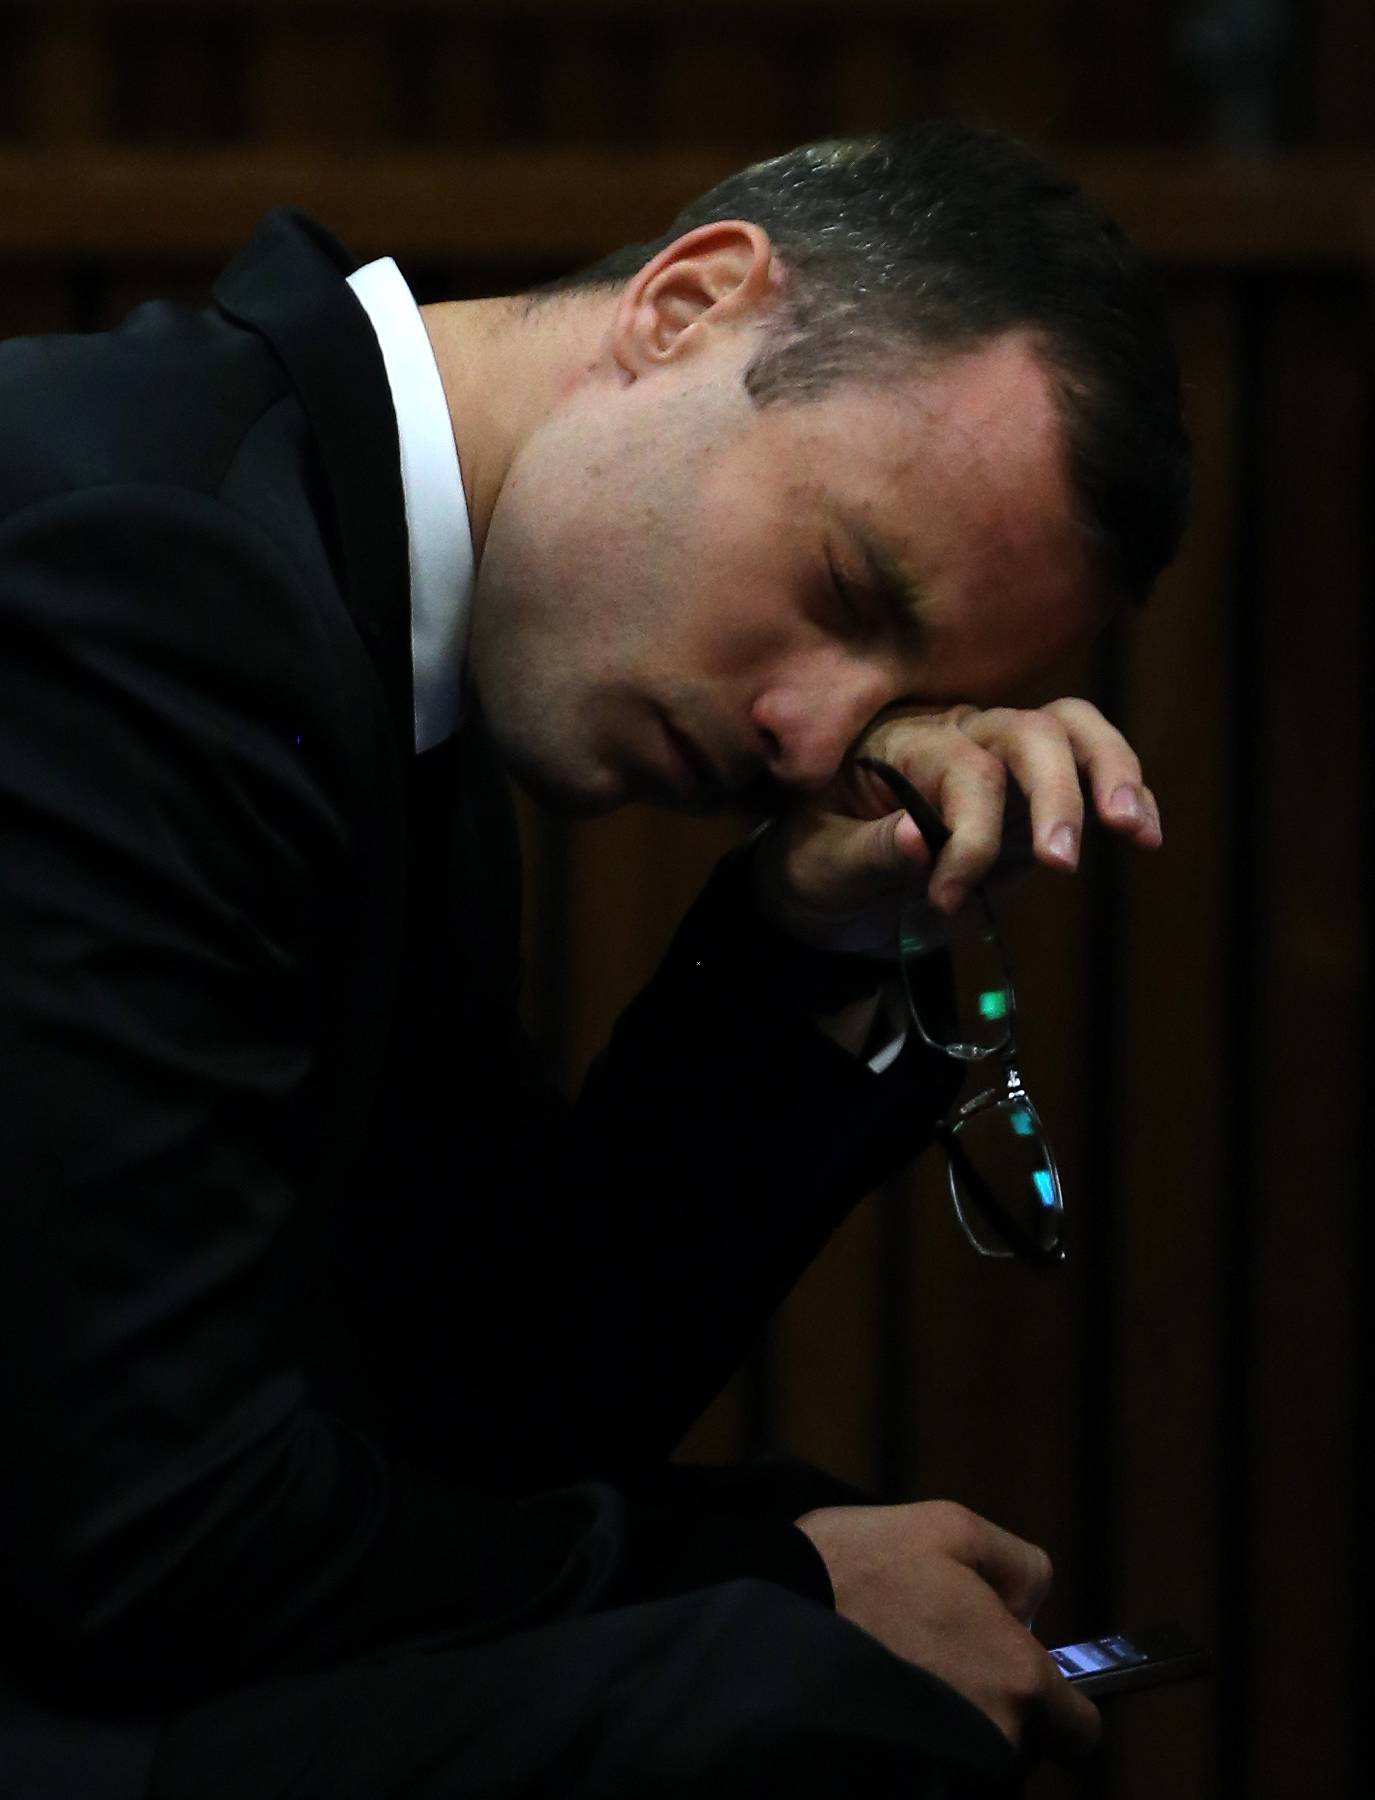 Oscar Pistorius gestures as he listens to evidence by a pathologist in court in Pretoria, South Africa, Monday.